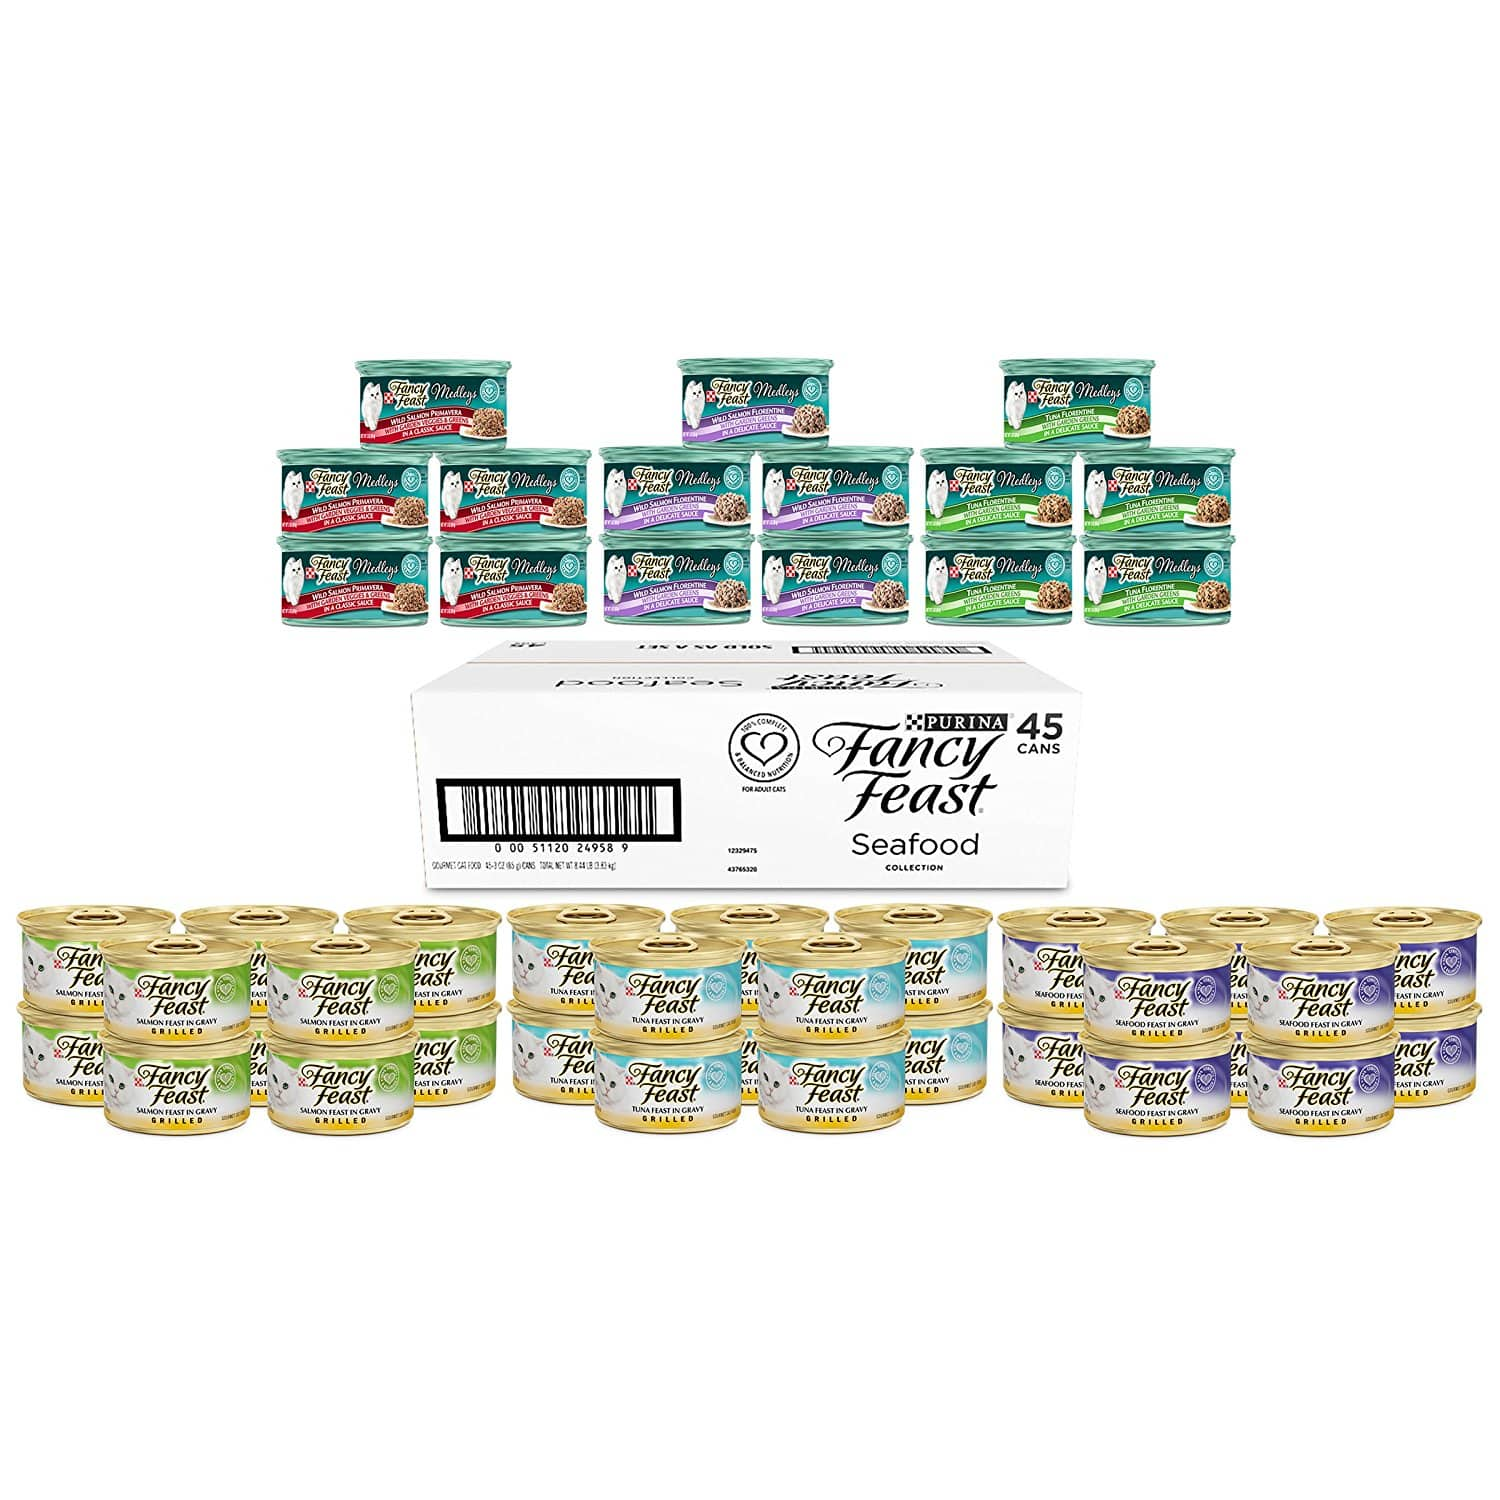 Purina Fancy Feast Seafood Wet Cat Food Variety Pack - (45) 3 oz. cans - $20.69  @amazon with Subscribe & Save (S&S)